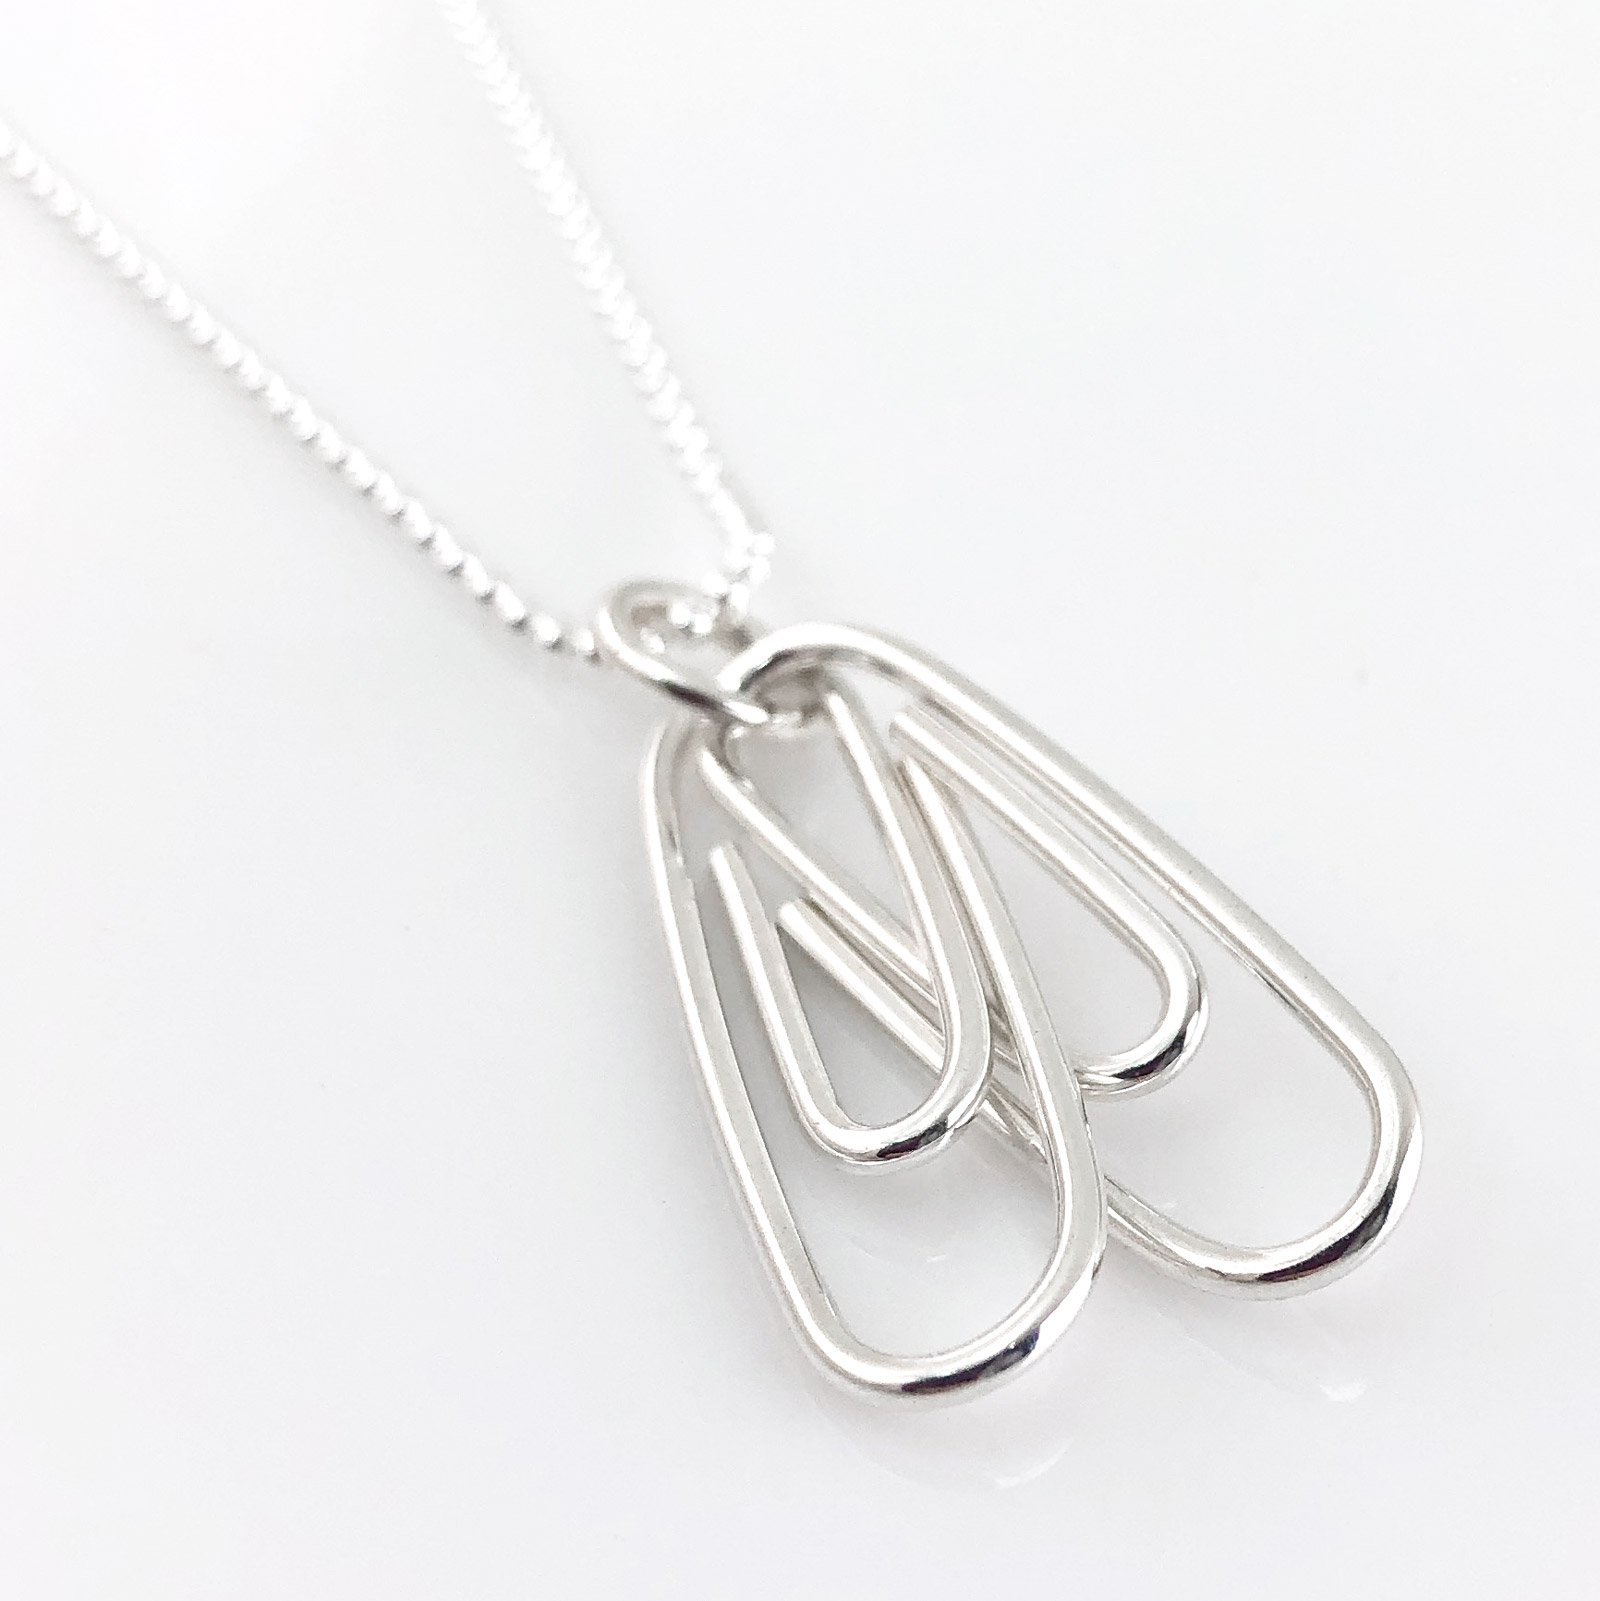 Two Linked Paperclips Necklace